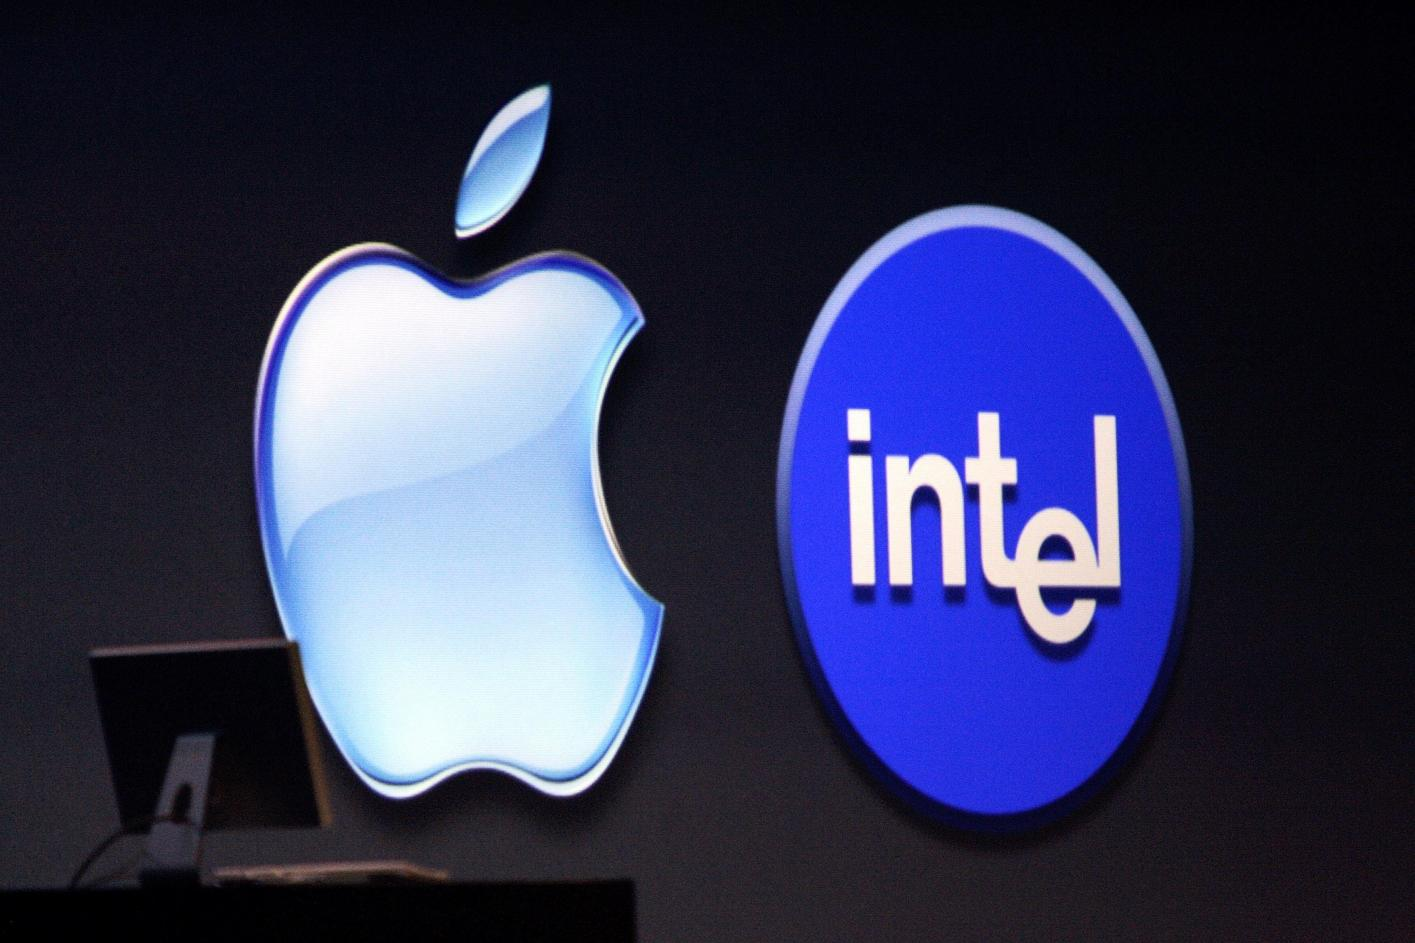 22886-apple-intel.jpg